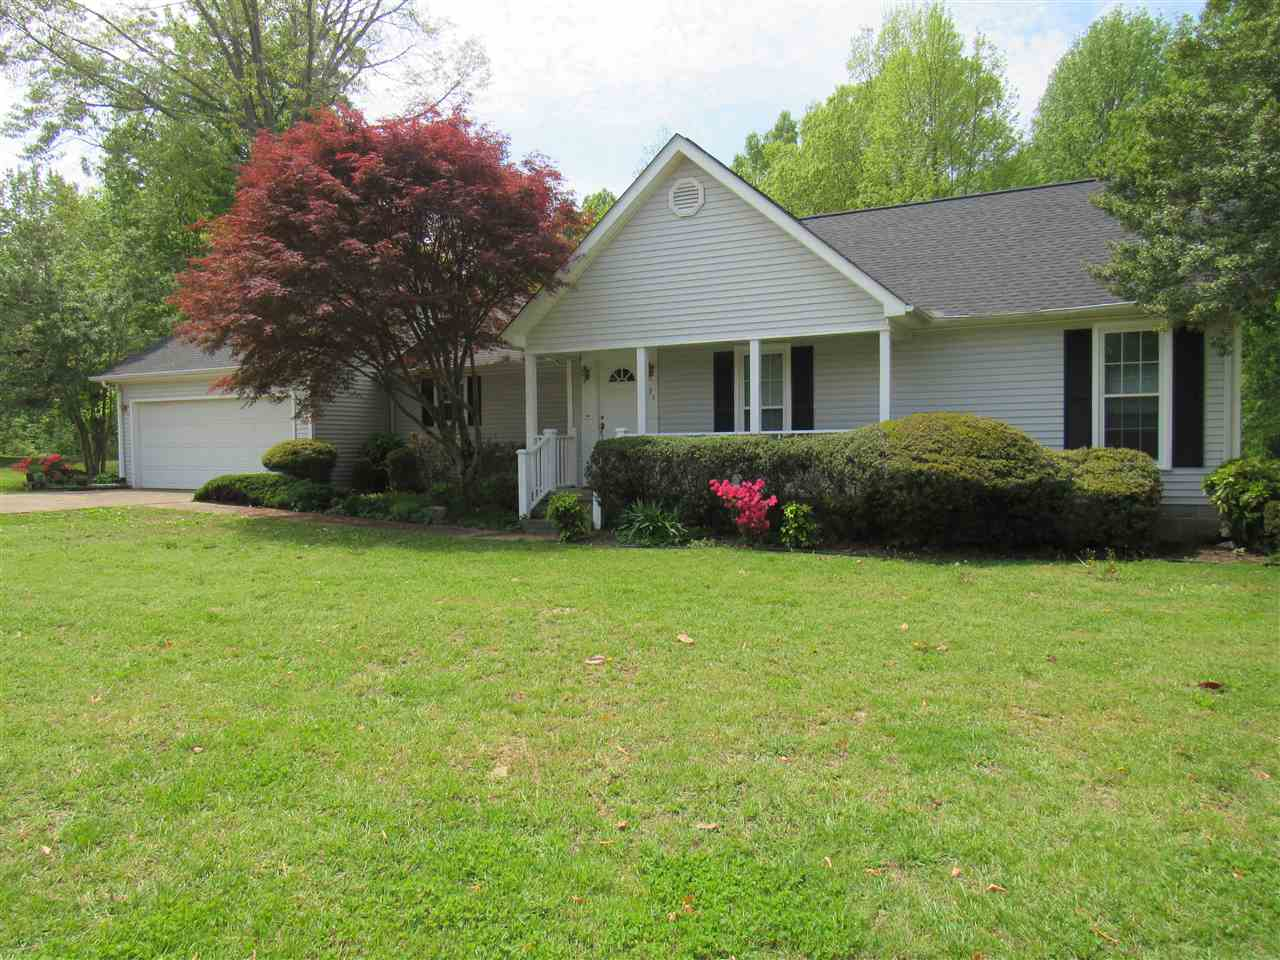 31 Pine Ridge Rd,Dyersburg,Tennessee 38024,4 Bedrooms Bedrooms,3 BathroomsBathrooms,Residential,31 Pine Ridge Rd,182954